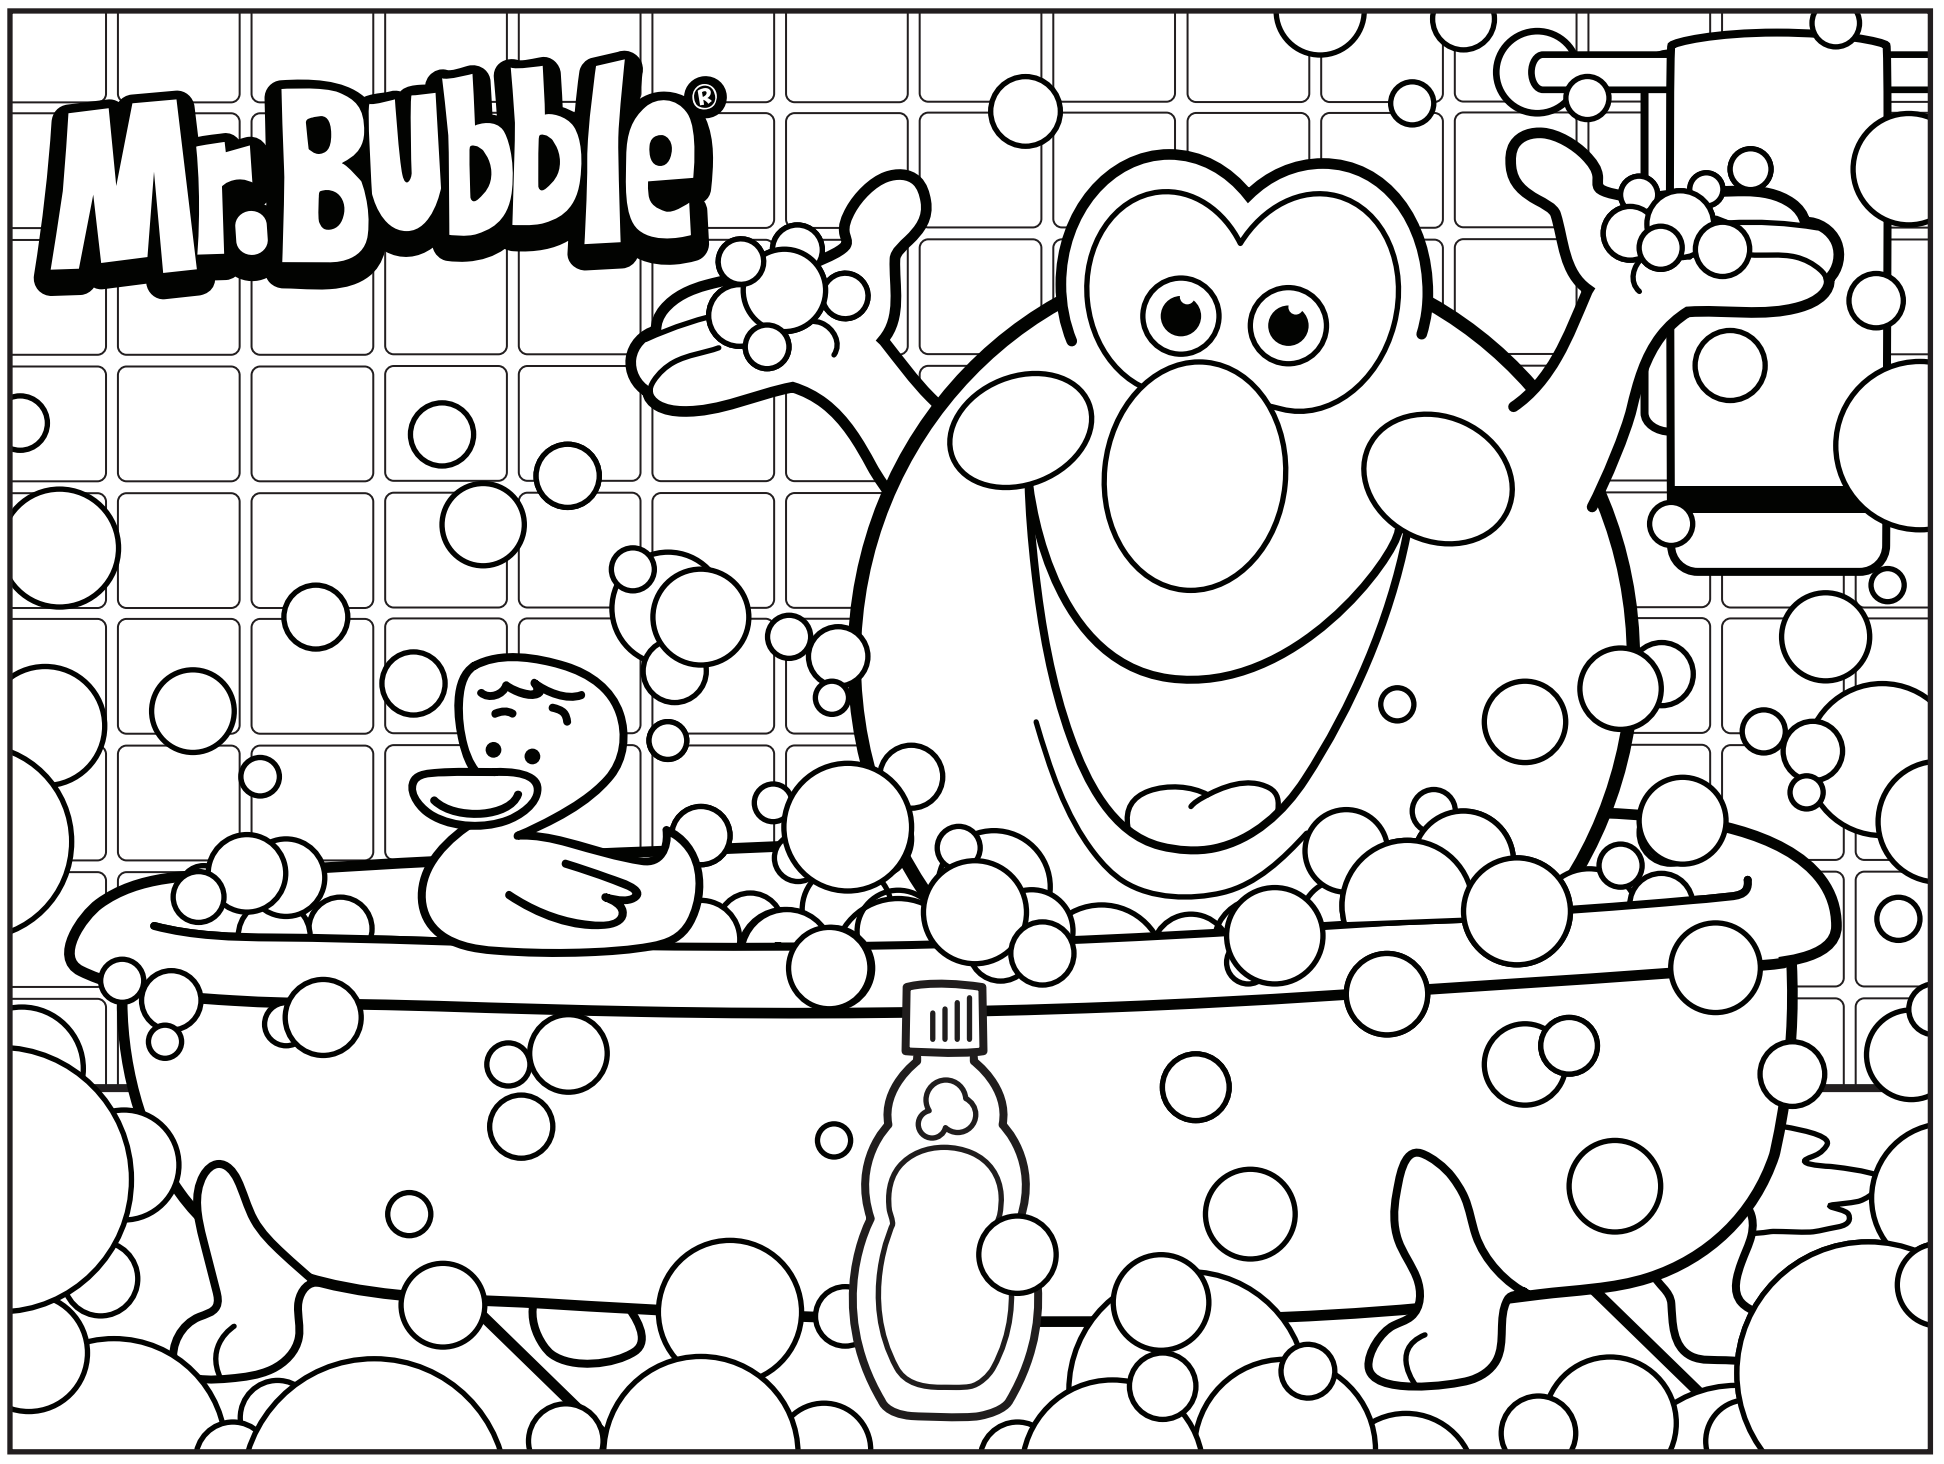 Coloring worksheets phonics - Mr Bubble Coloring Page Bath Time